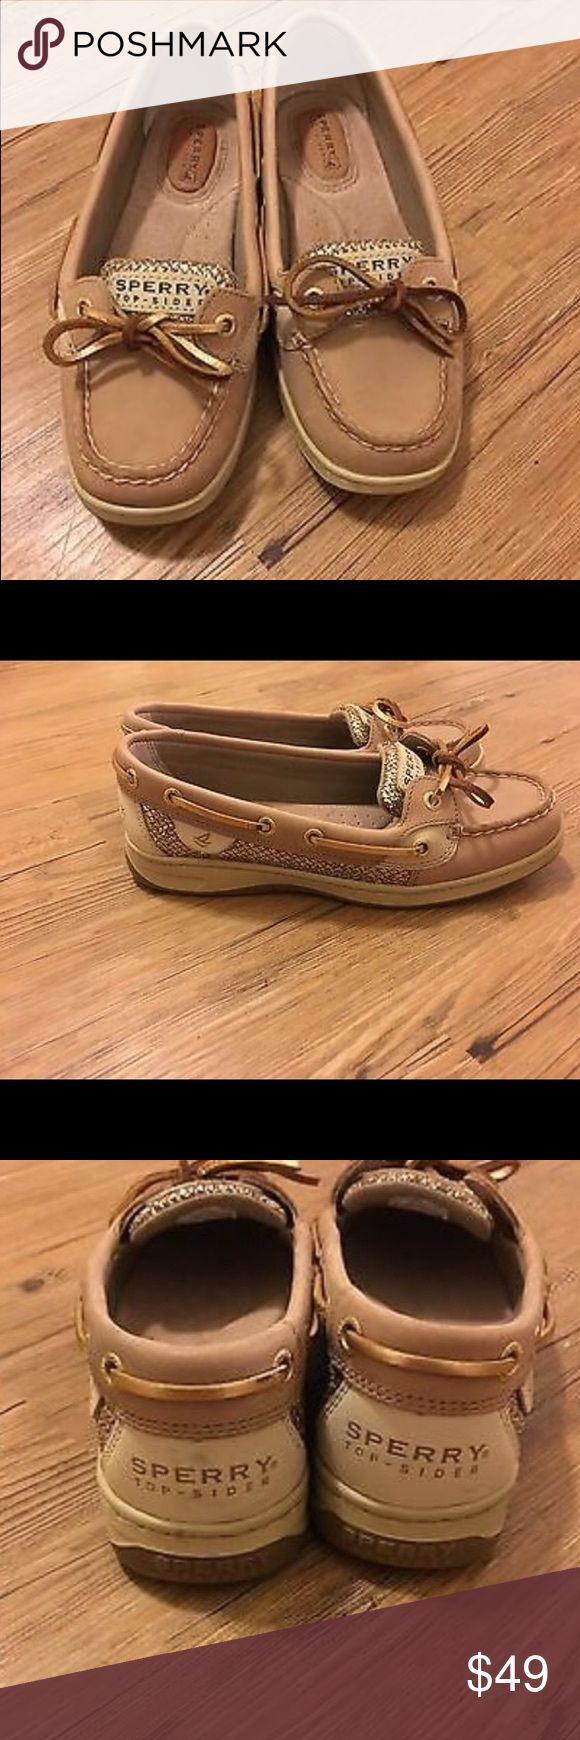 Women's Sperry top sider Angelfish gold sparkle Like brand new! Only worn briefly for one time. You can tell by looking at the hardly worn soles of the shoes (see picture) beautiful size 6 women's shoes. Super comfortable Sperry Top-Sider Shoes Flats & Loafers